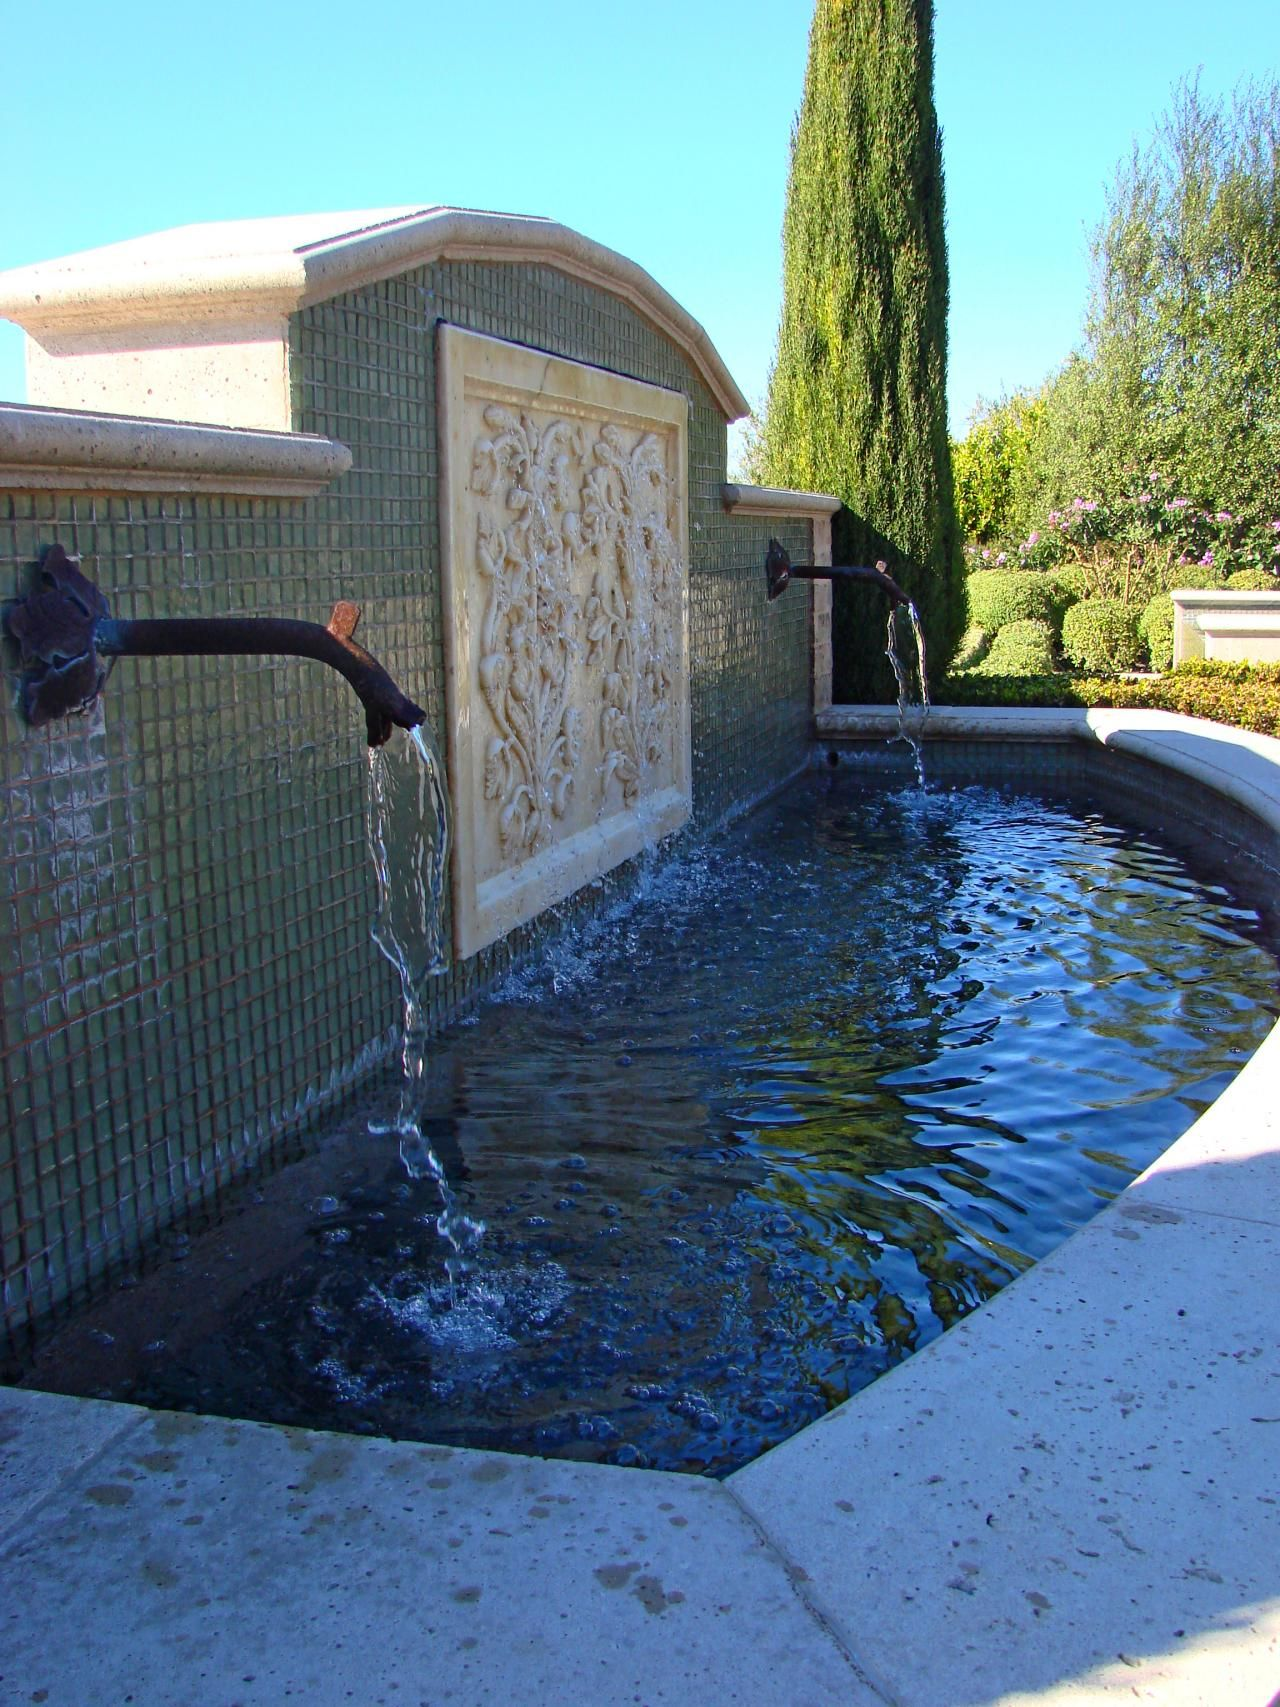 Create A Beautiful Outdoor Space With Expert Tips On Hardscaping, Plants,  Water Features And